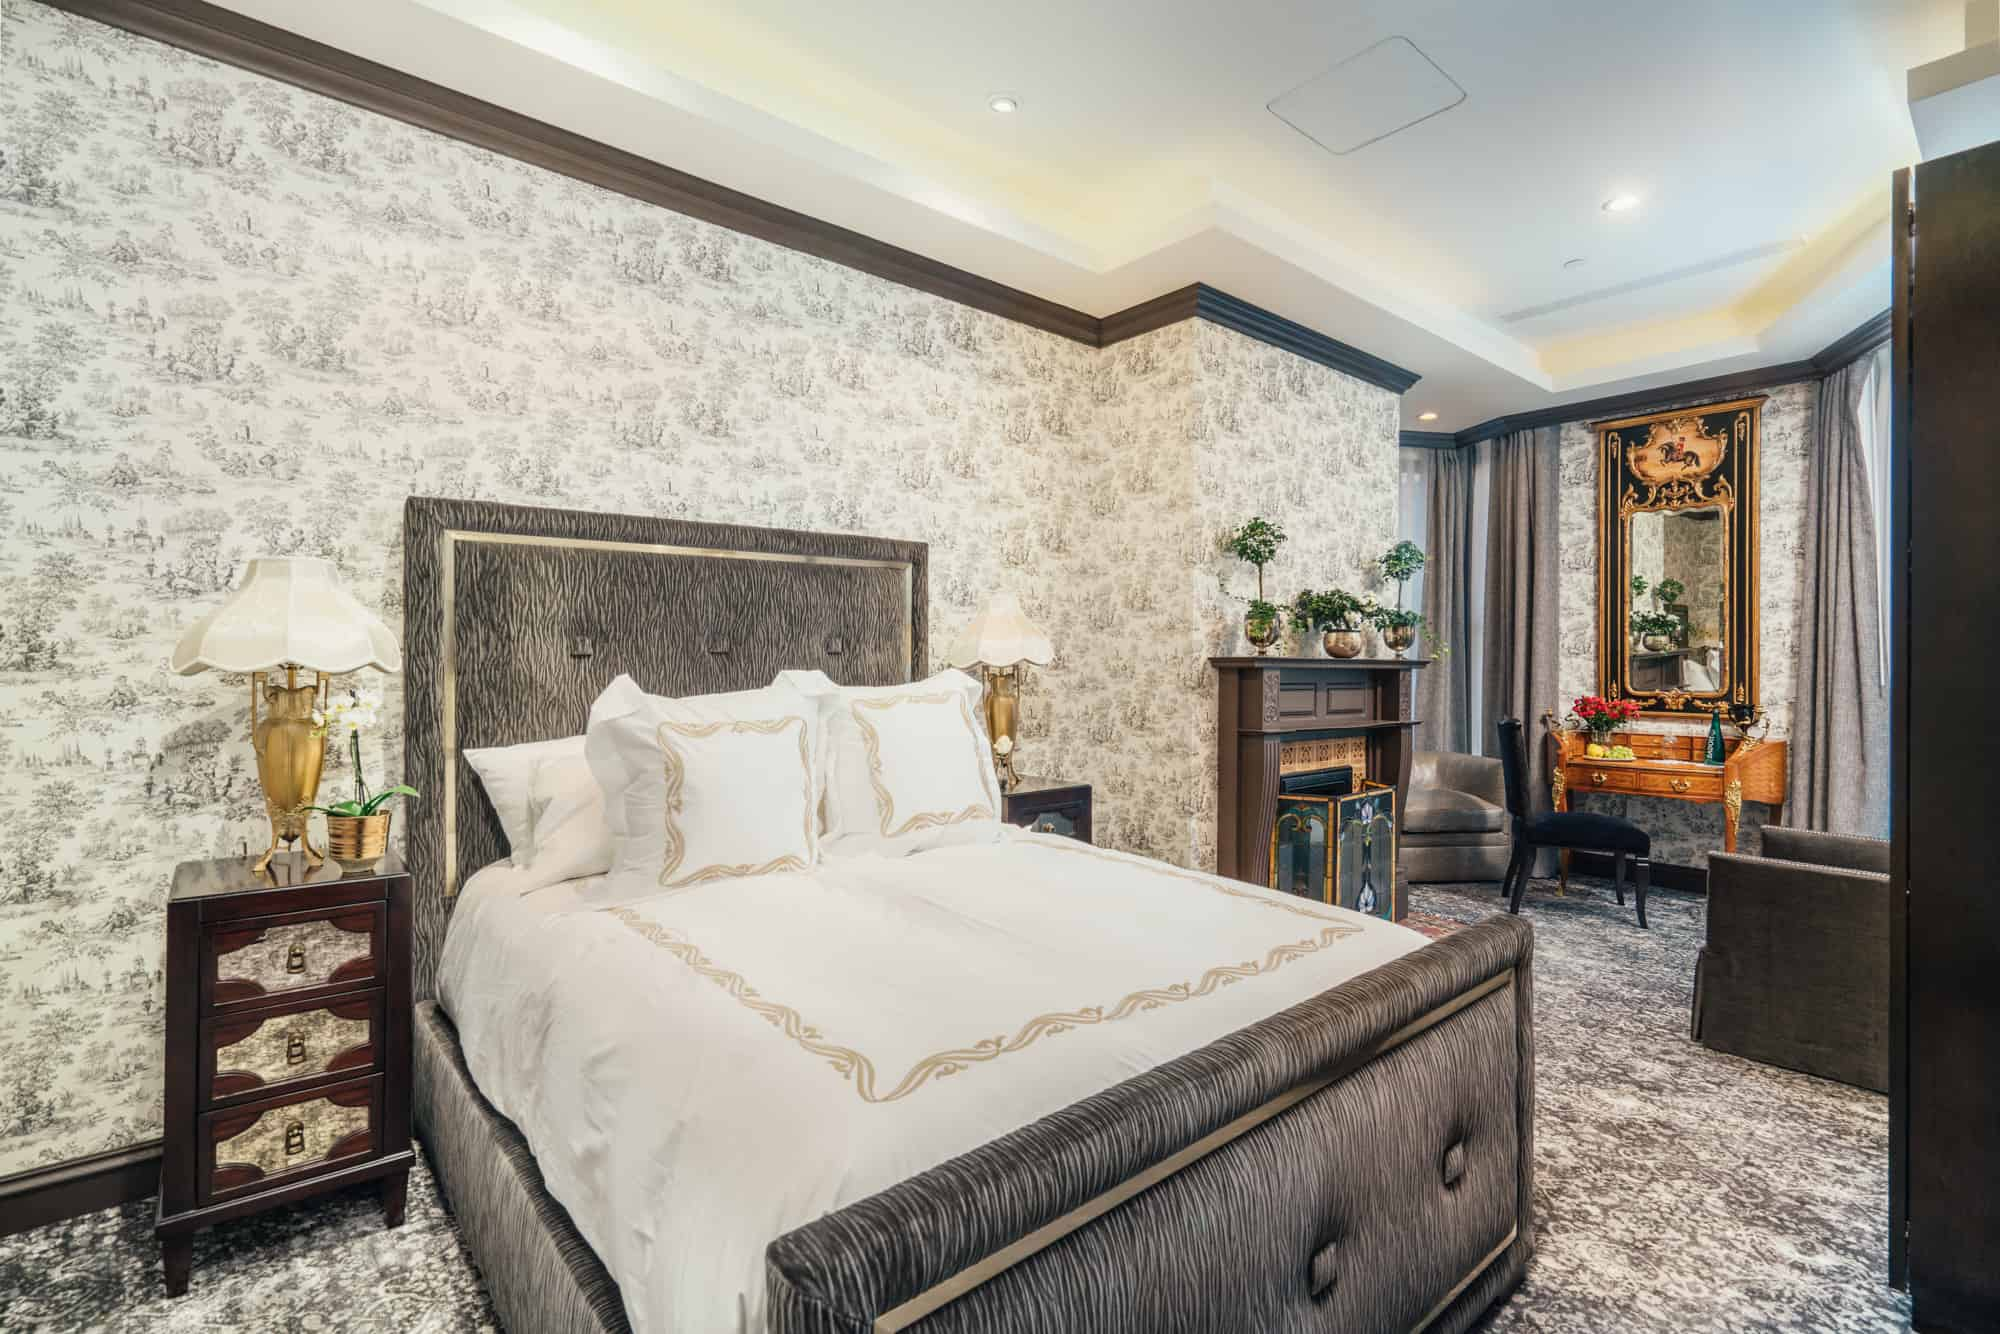 The Jardin Room - Queen size bed, Nero Portoro marble bathroom with separate shower and deep soaking tub.